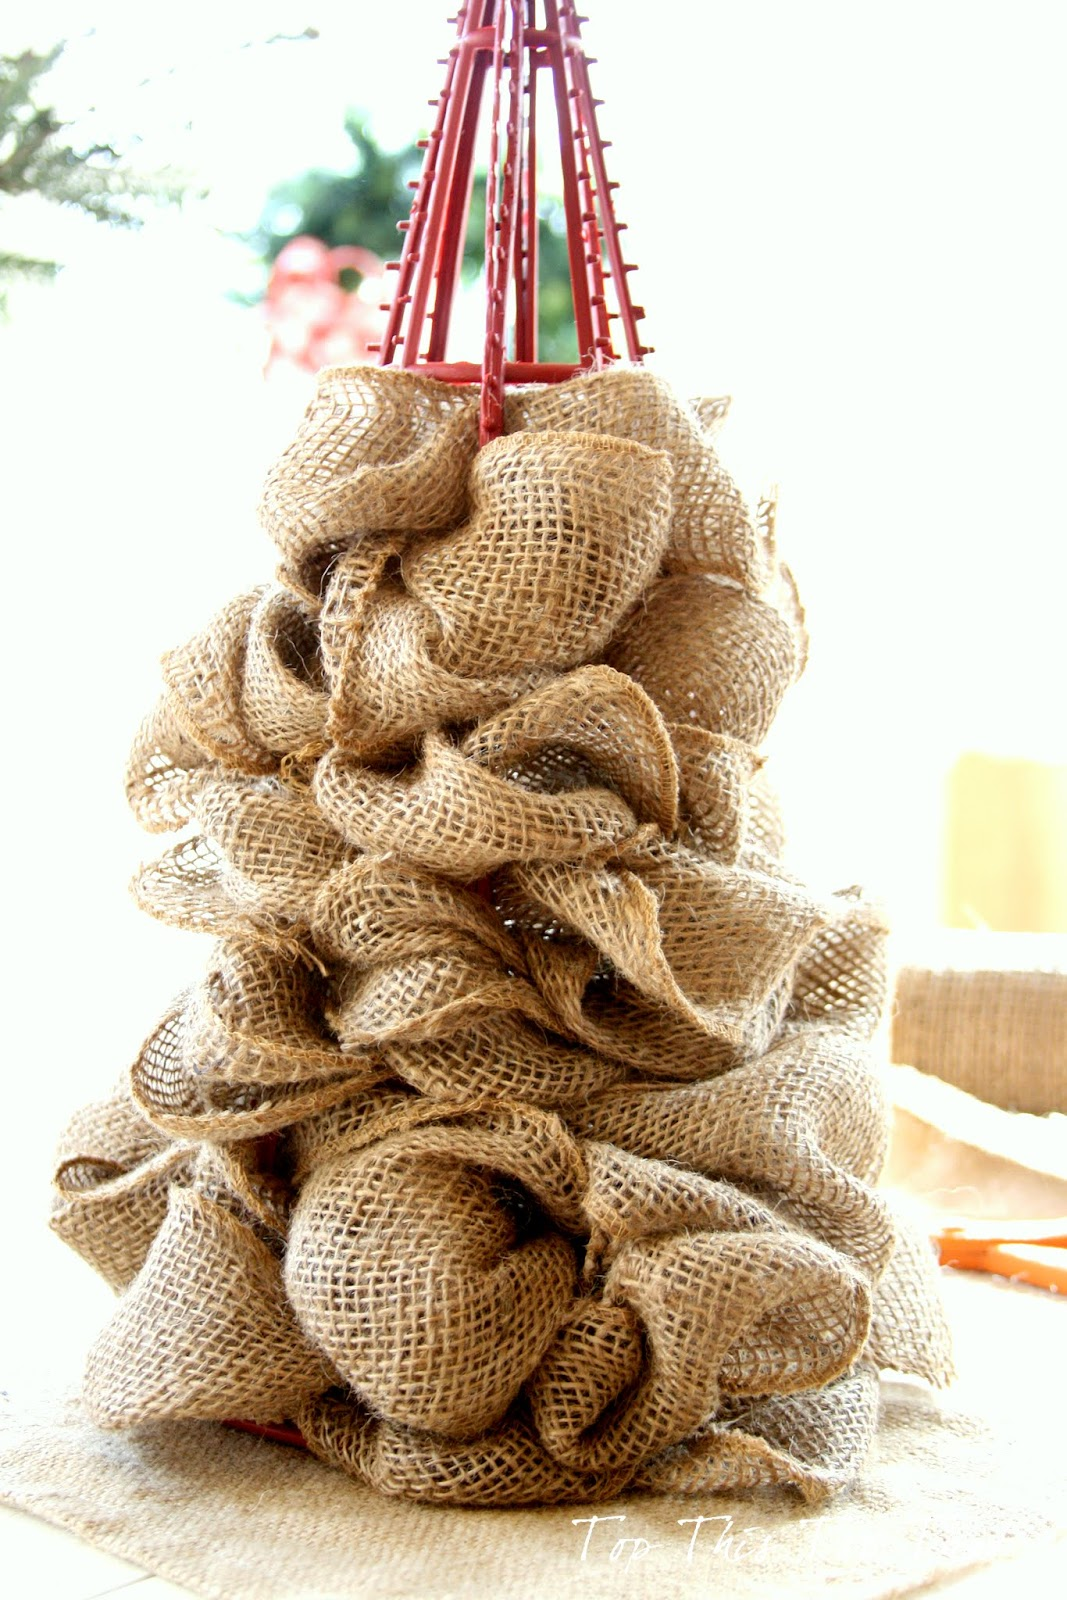 Diy burlap tree 2 duke manor farm for Crafts made with burlap